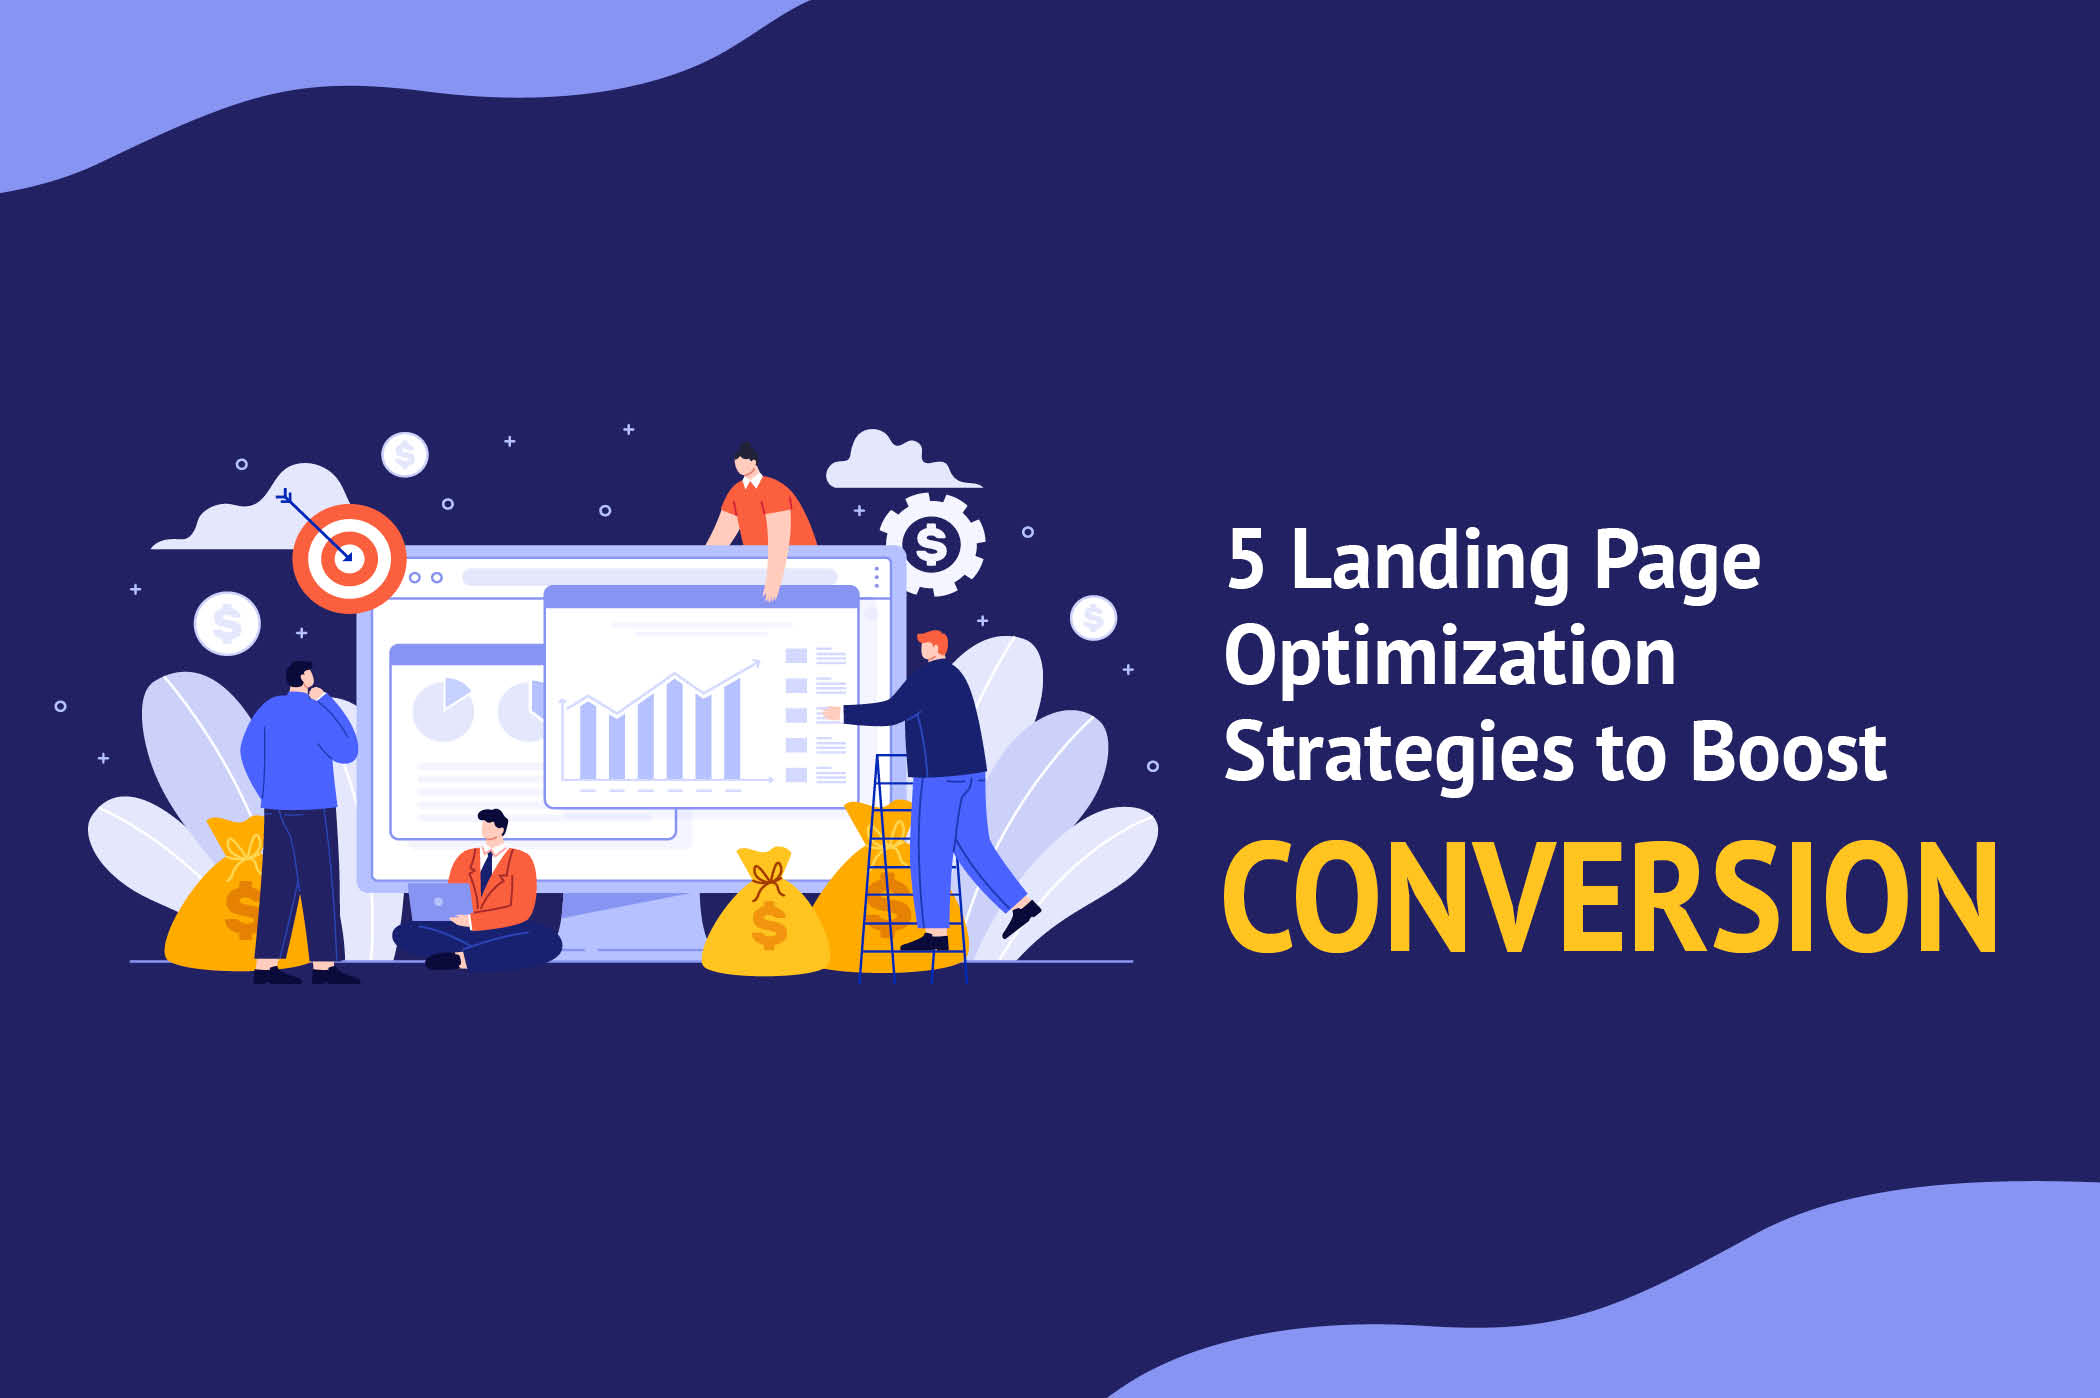 5 Best Landing Page Optimization Strategies to Boost Conversions